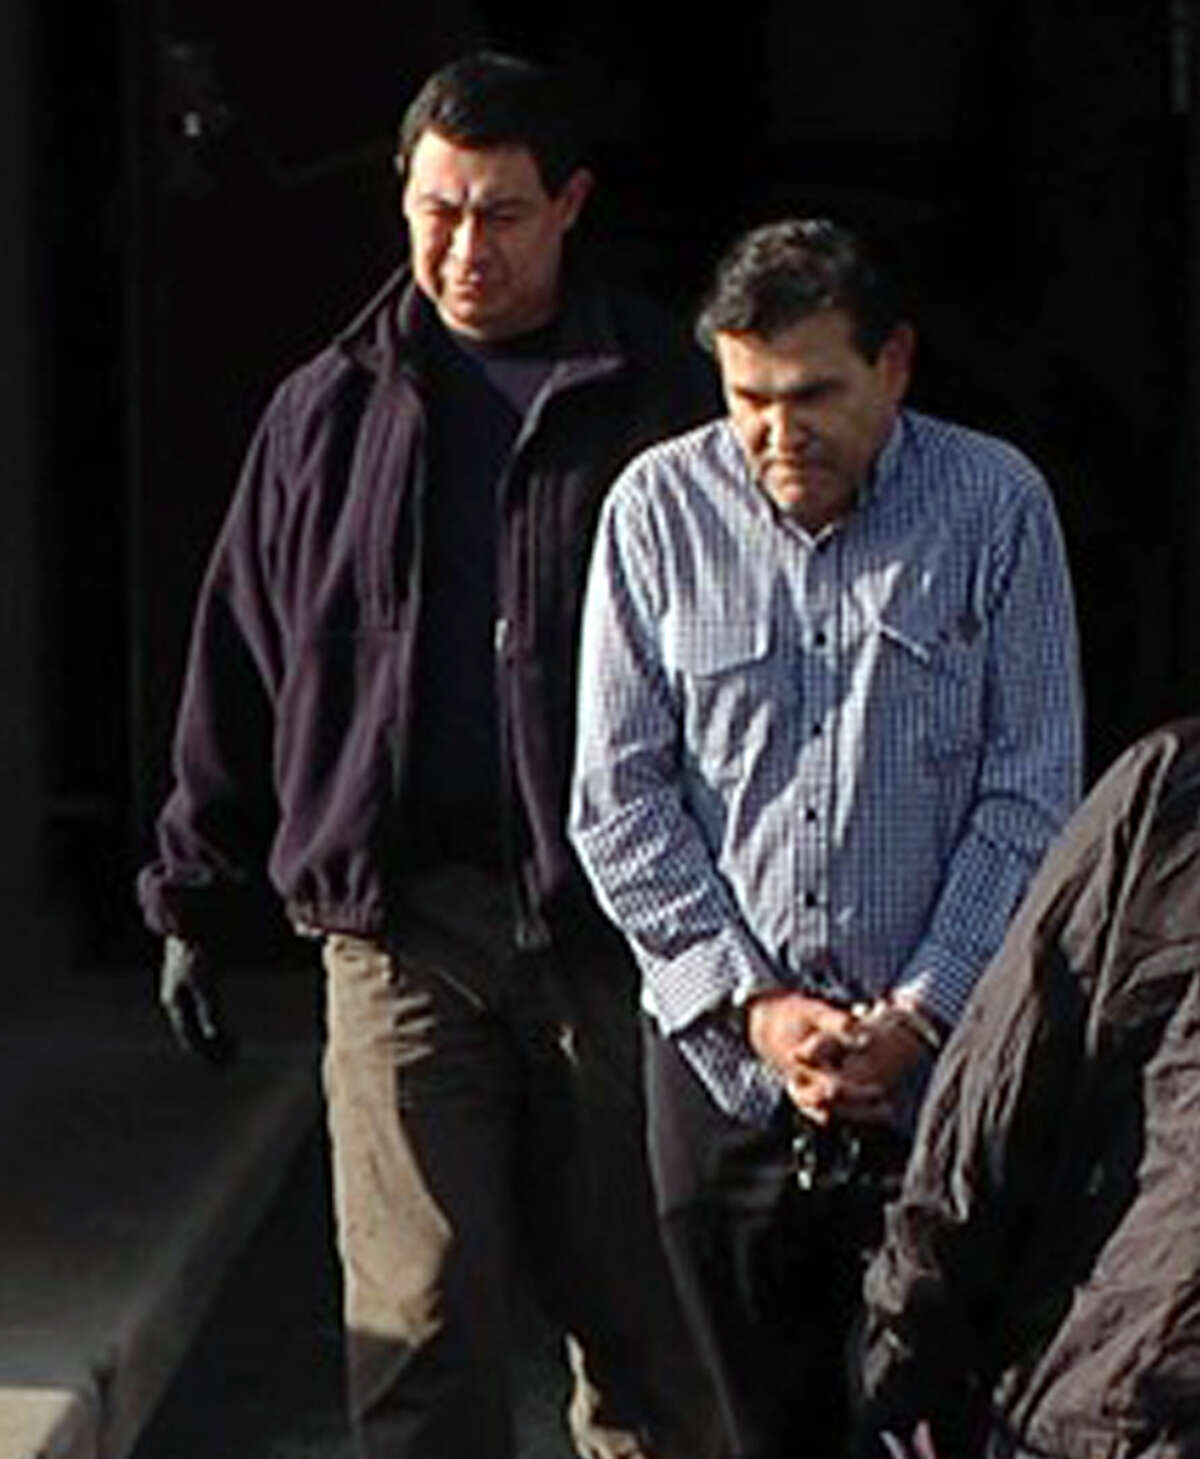 Antonio Pena Arguelles (right) charged with money laundering linked to Gulf and Los Zetas drug cartels in Mexico. Courtesy WOAI.COM